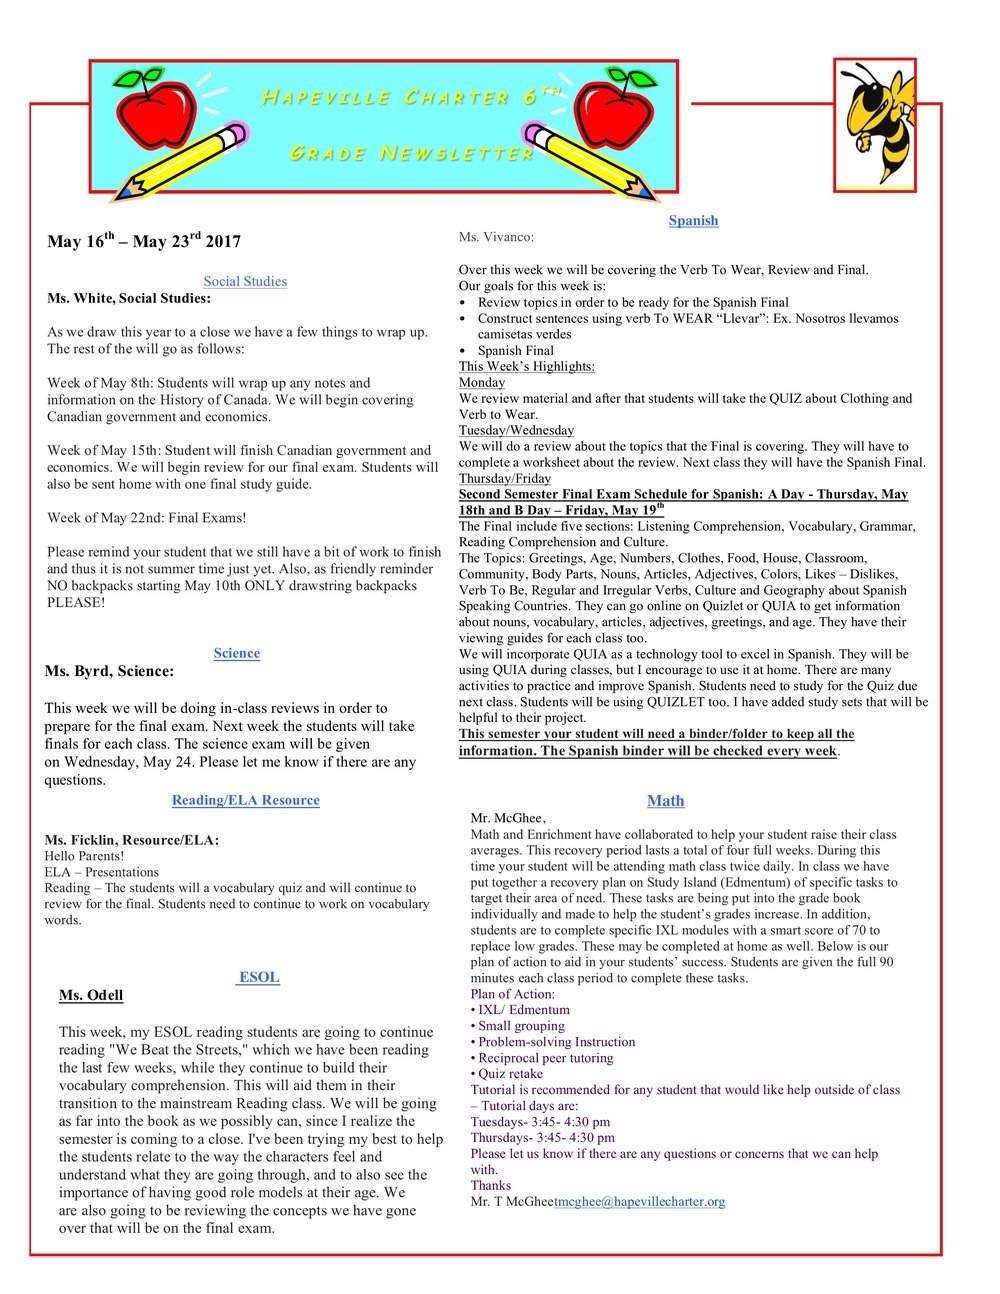 Newsletter Image6th Grade Newsletter 5-16-2017.jpeg